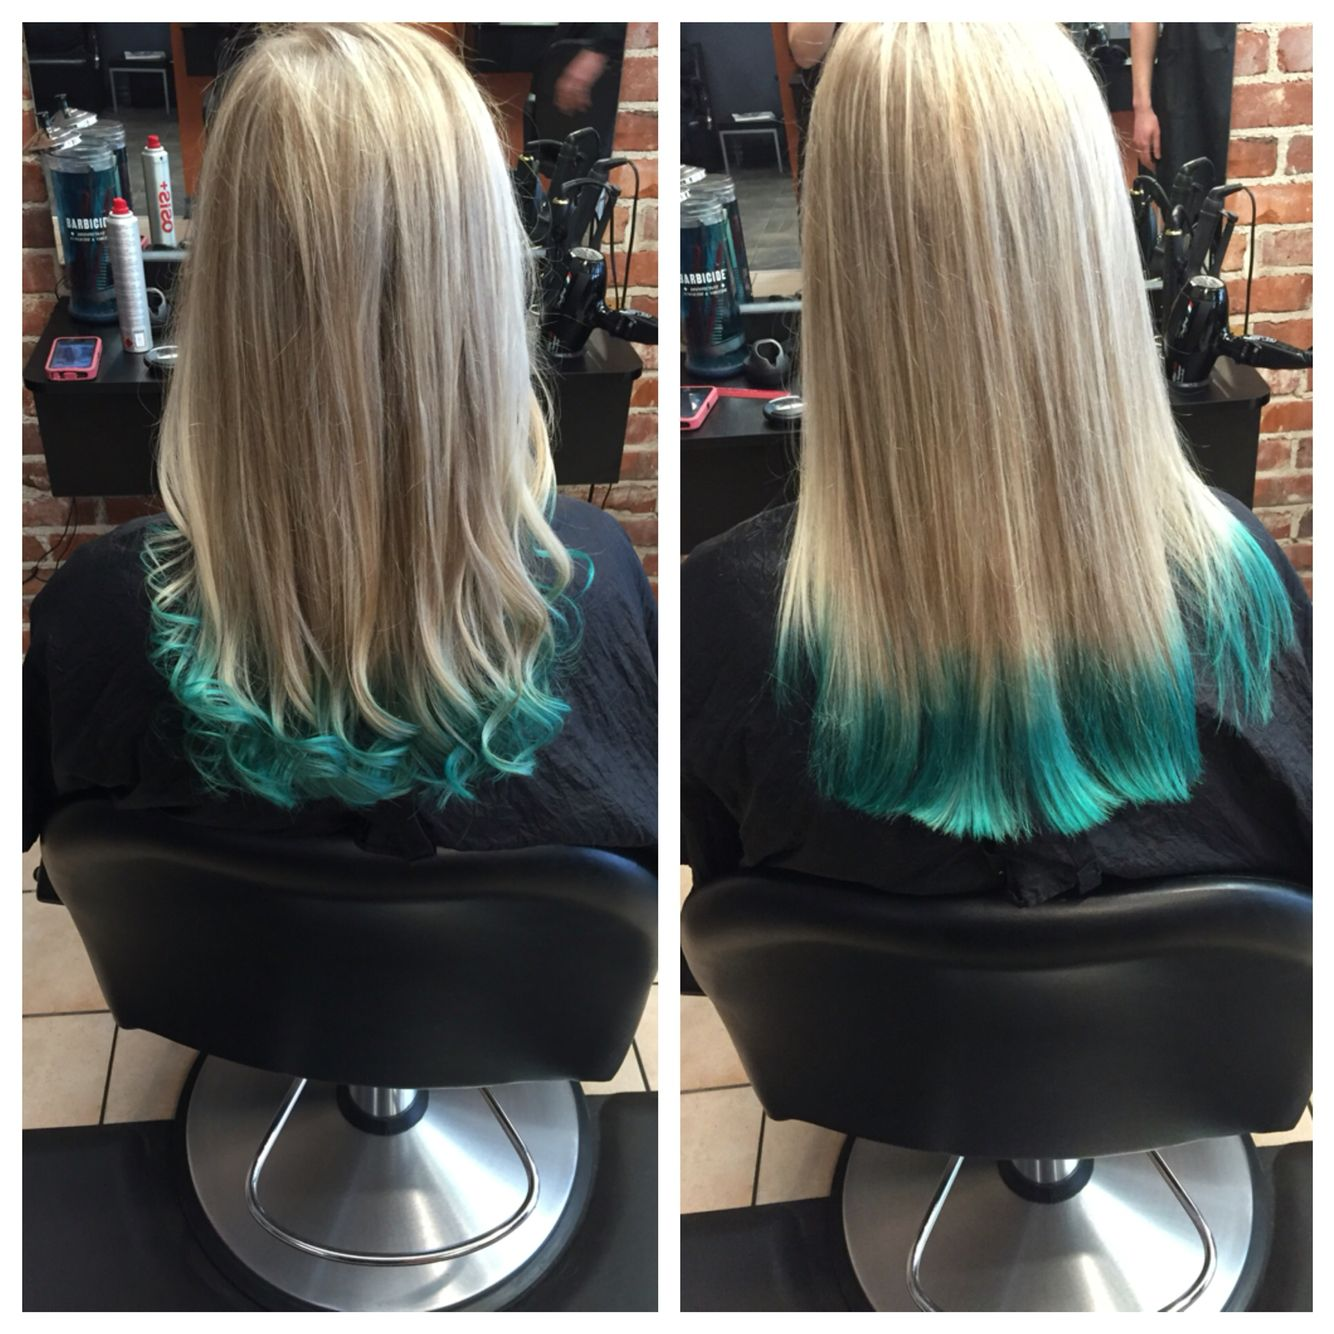 Teal Green Balayage Tips On Blonde Hair Blue Tips Hair Blue